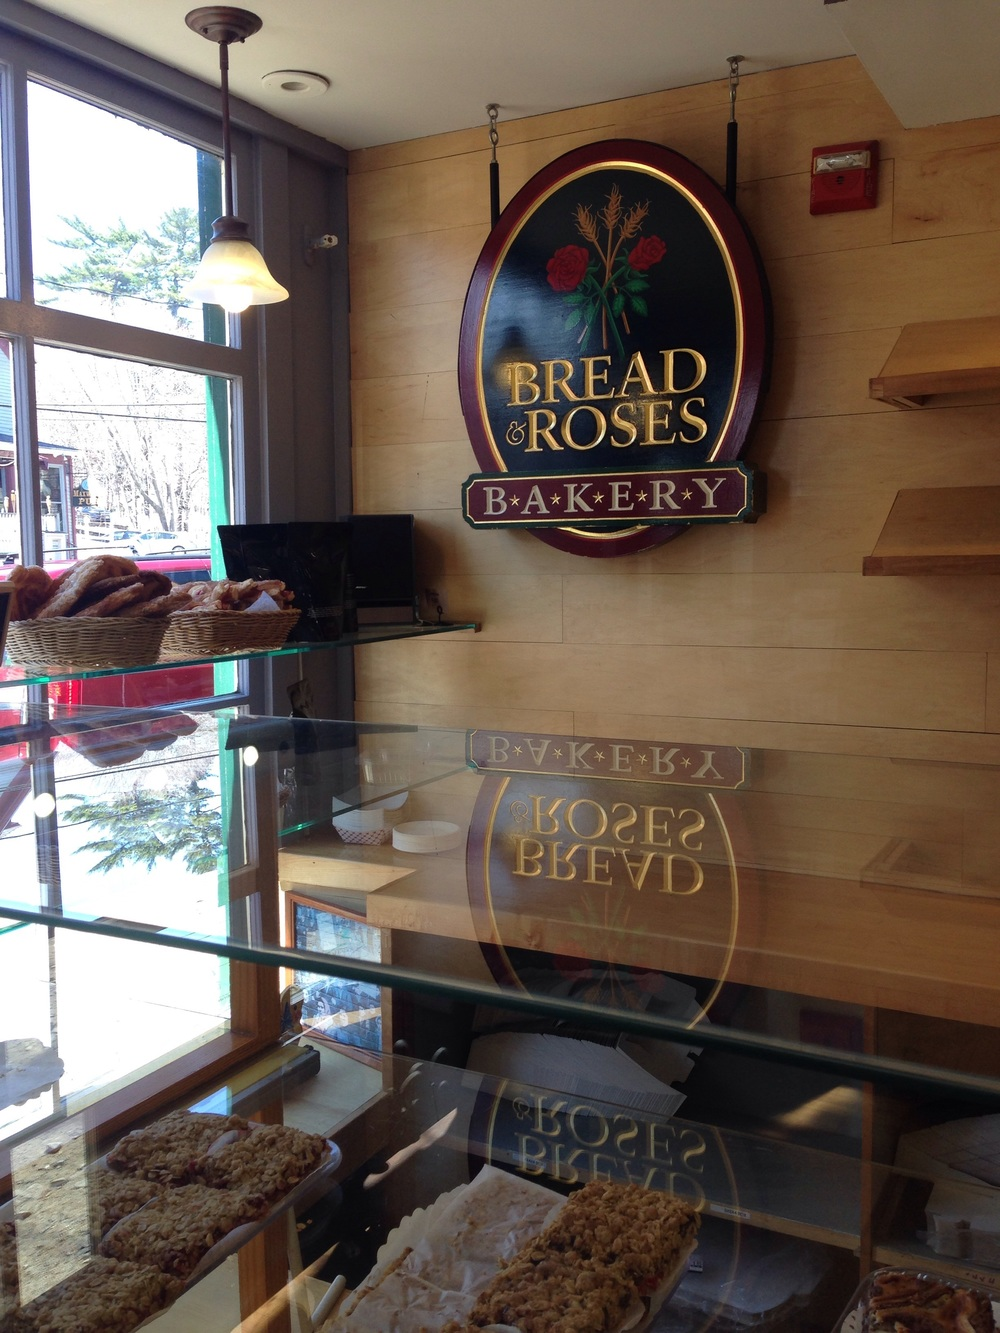 Bread & Roses Bakery - so much deliciousness!